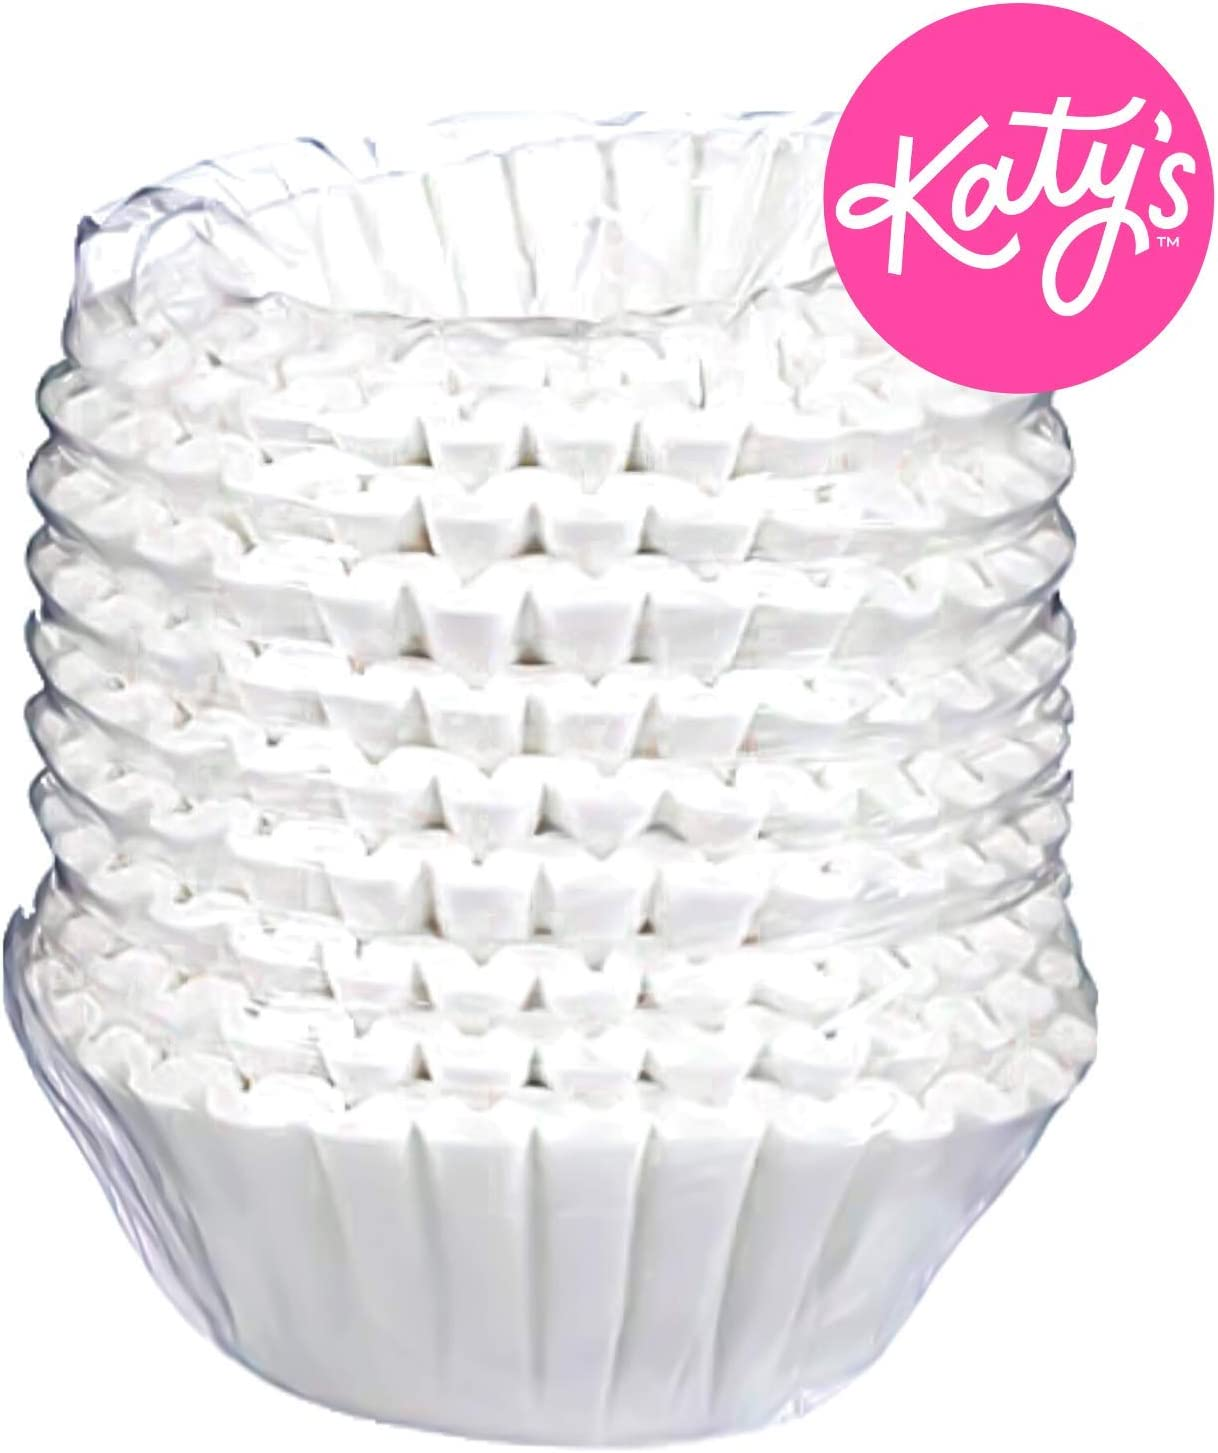 "DRINK KATY'S | Large 12 Cup Commercial Coffee Filters - 9.75"" x 4.5"" 